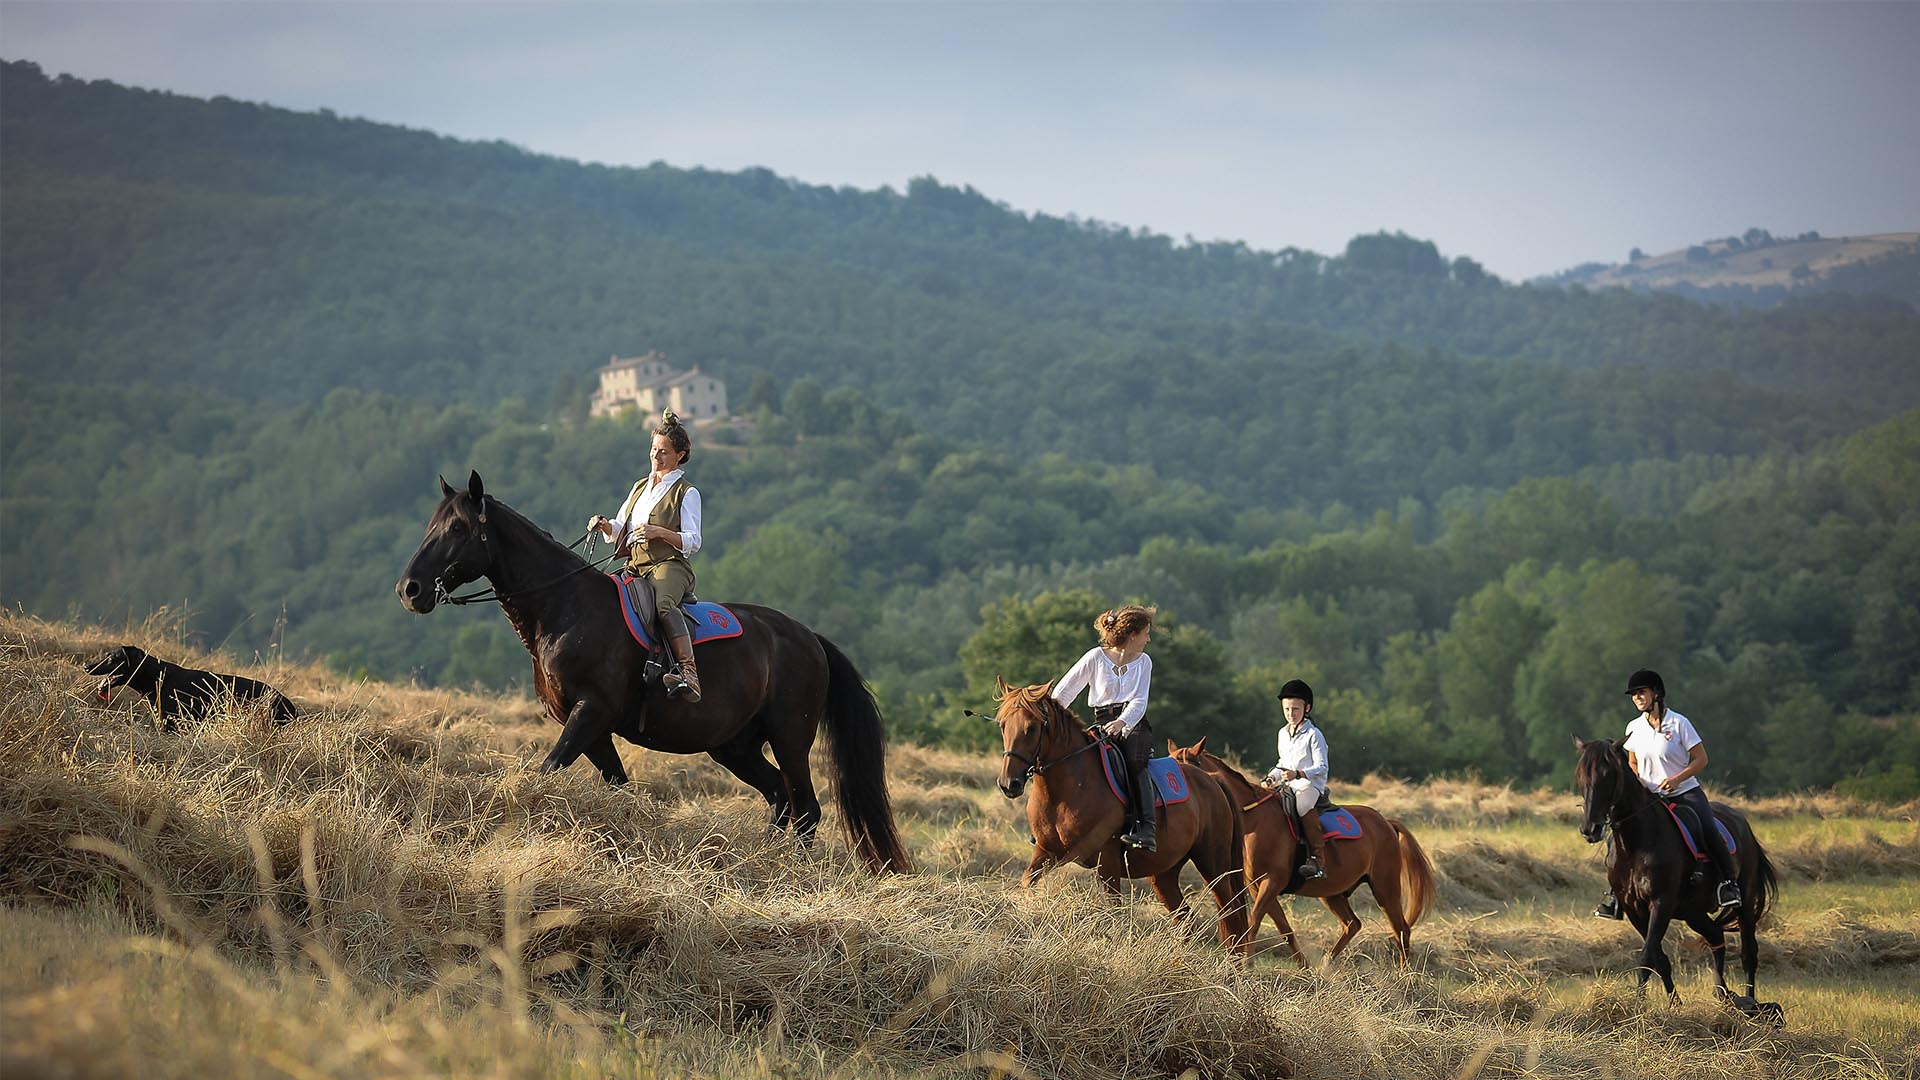 Stay in the saddle: 8 of the best boutique hotels for horse riding